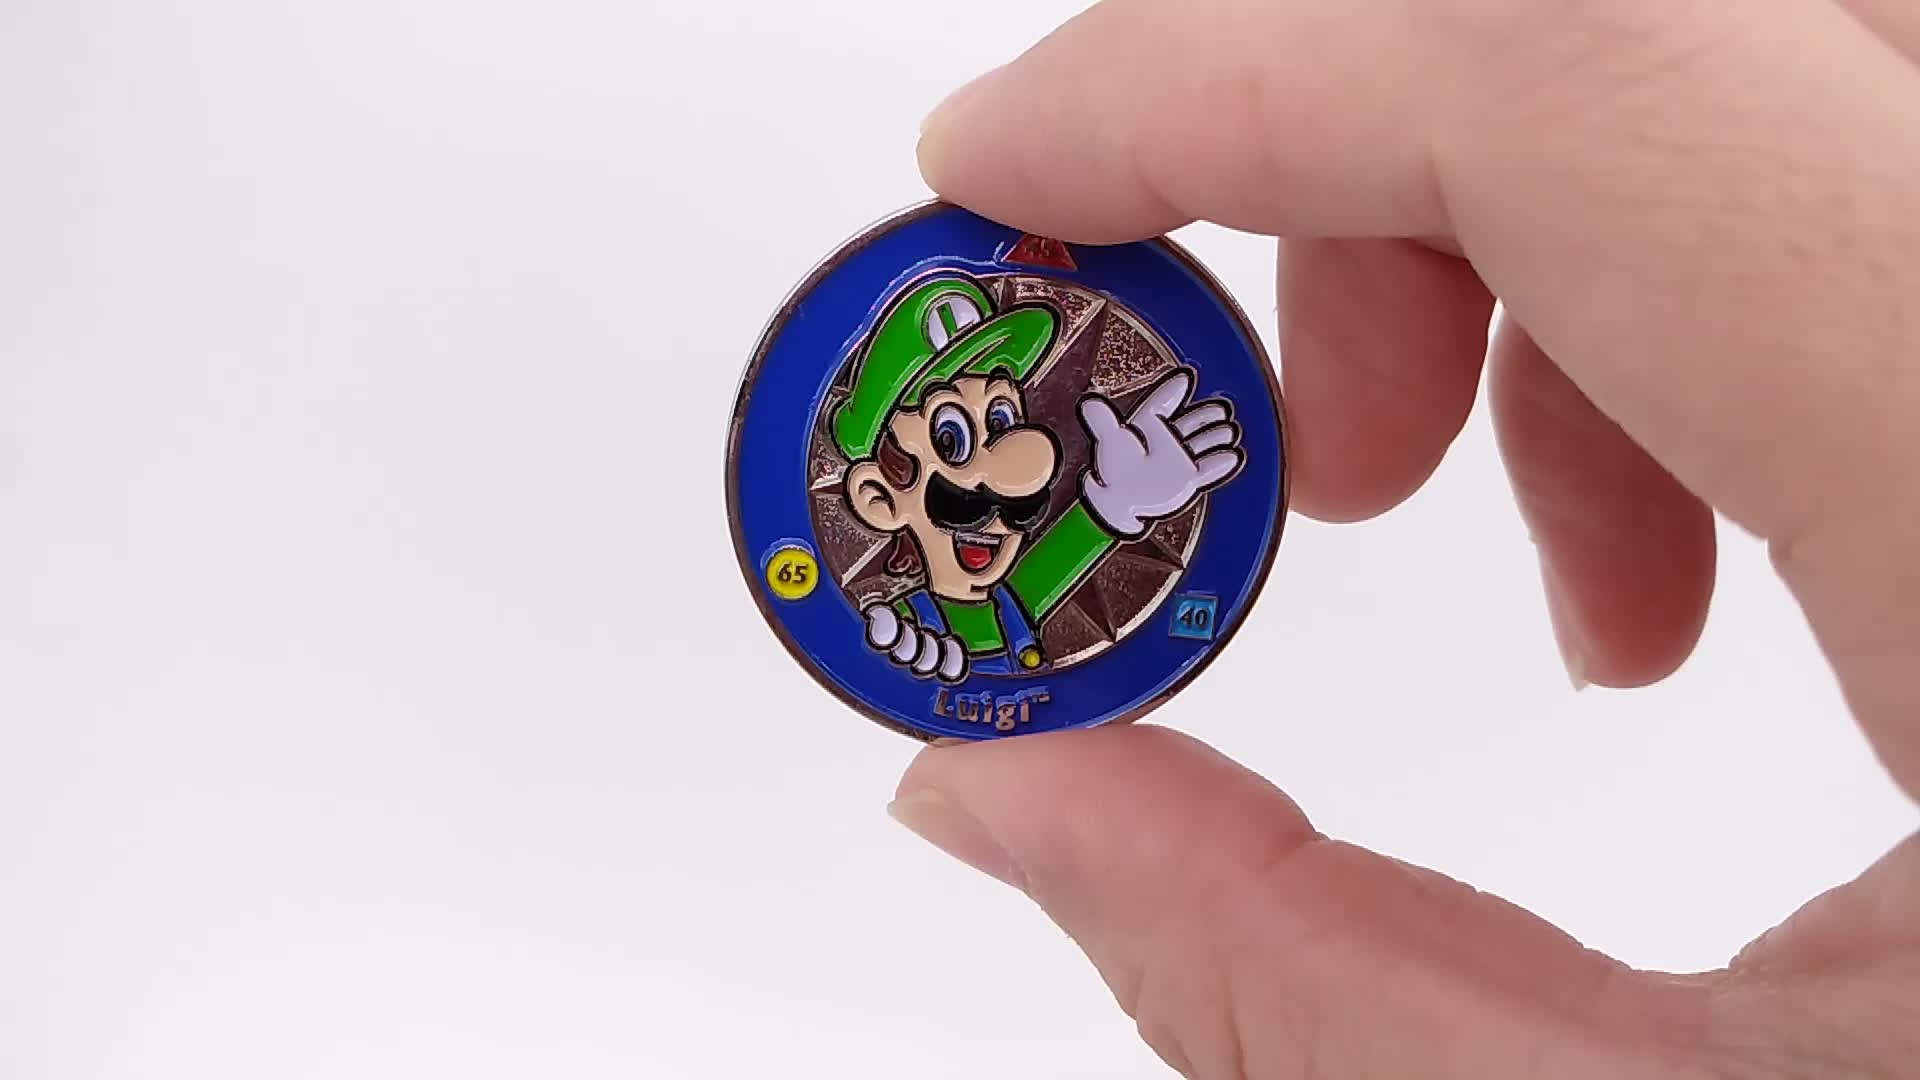 Custom metal stamping table games coin collectible and souvenir coins